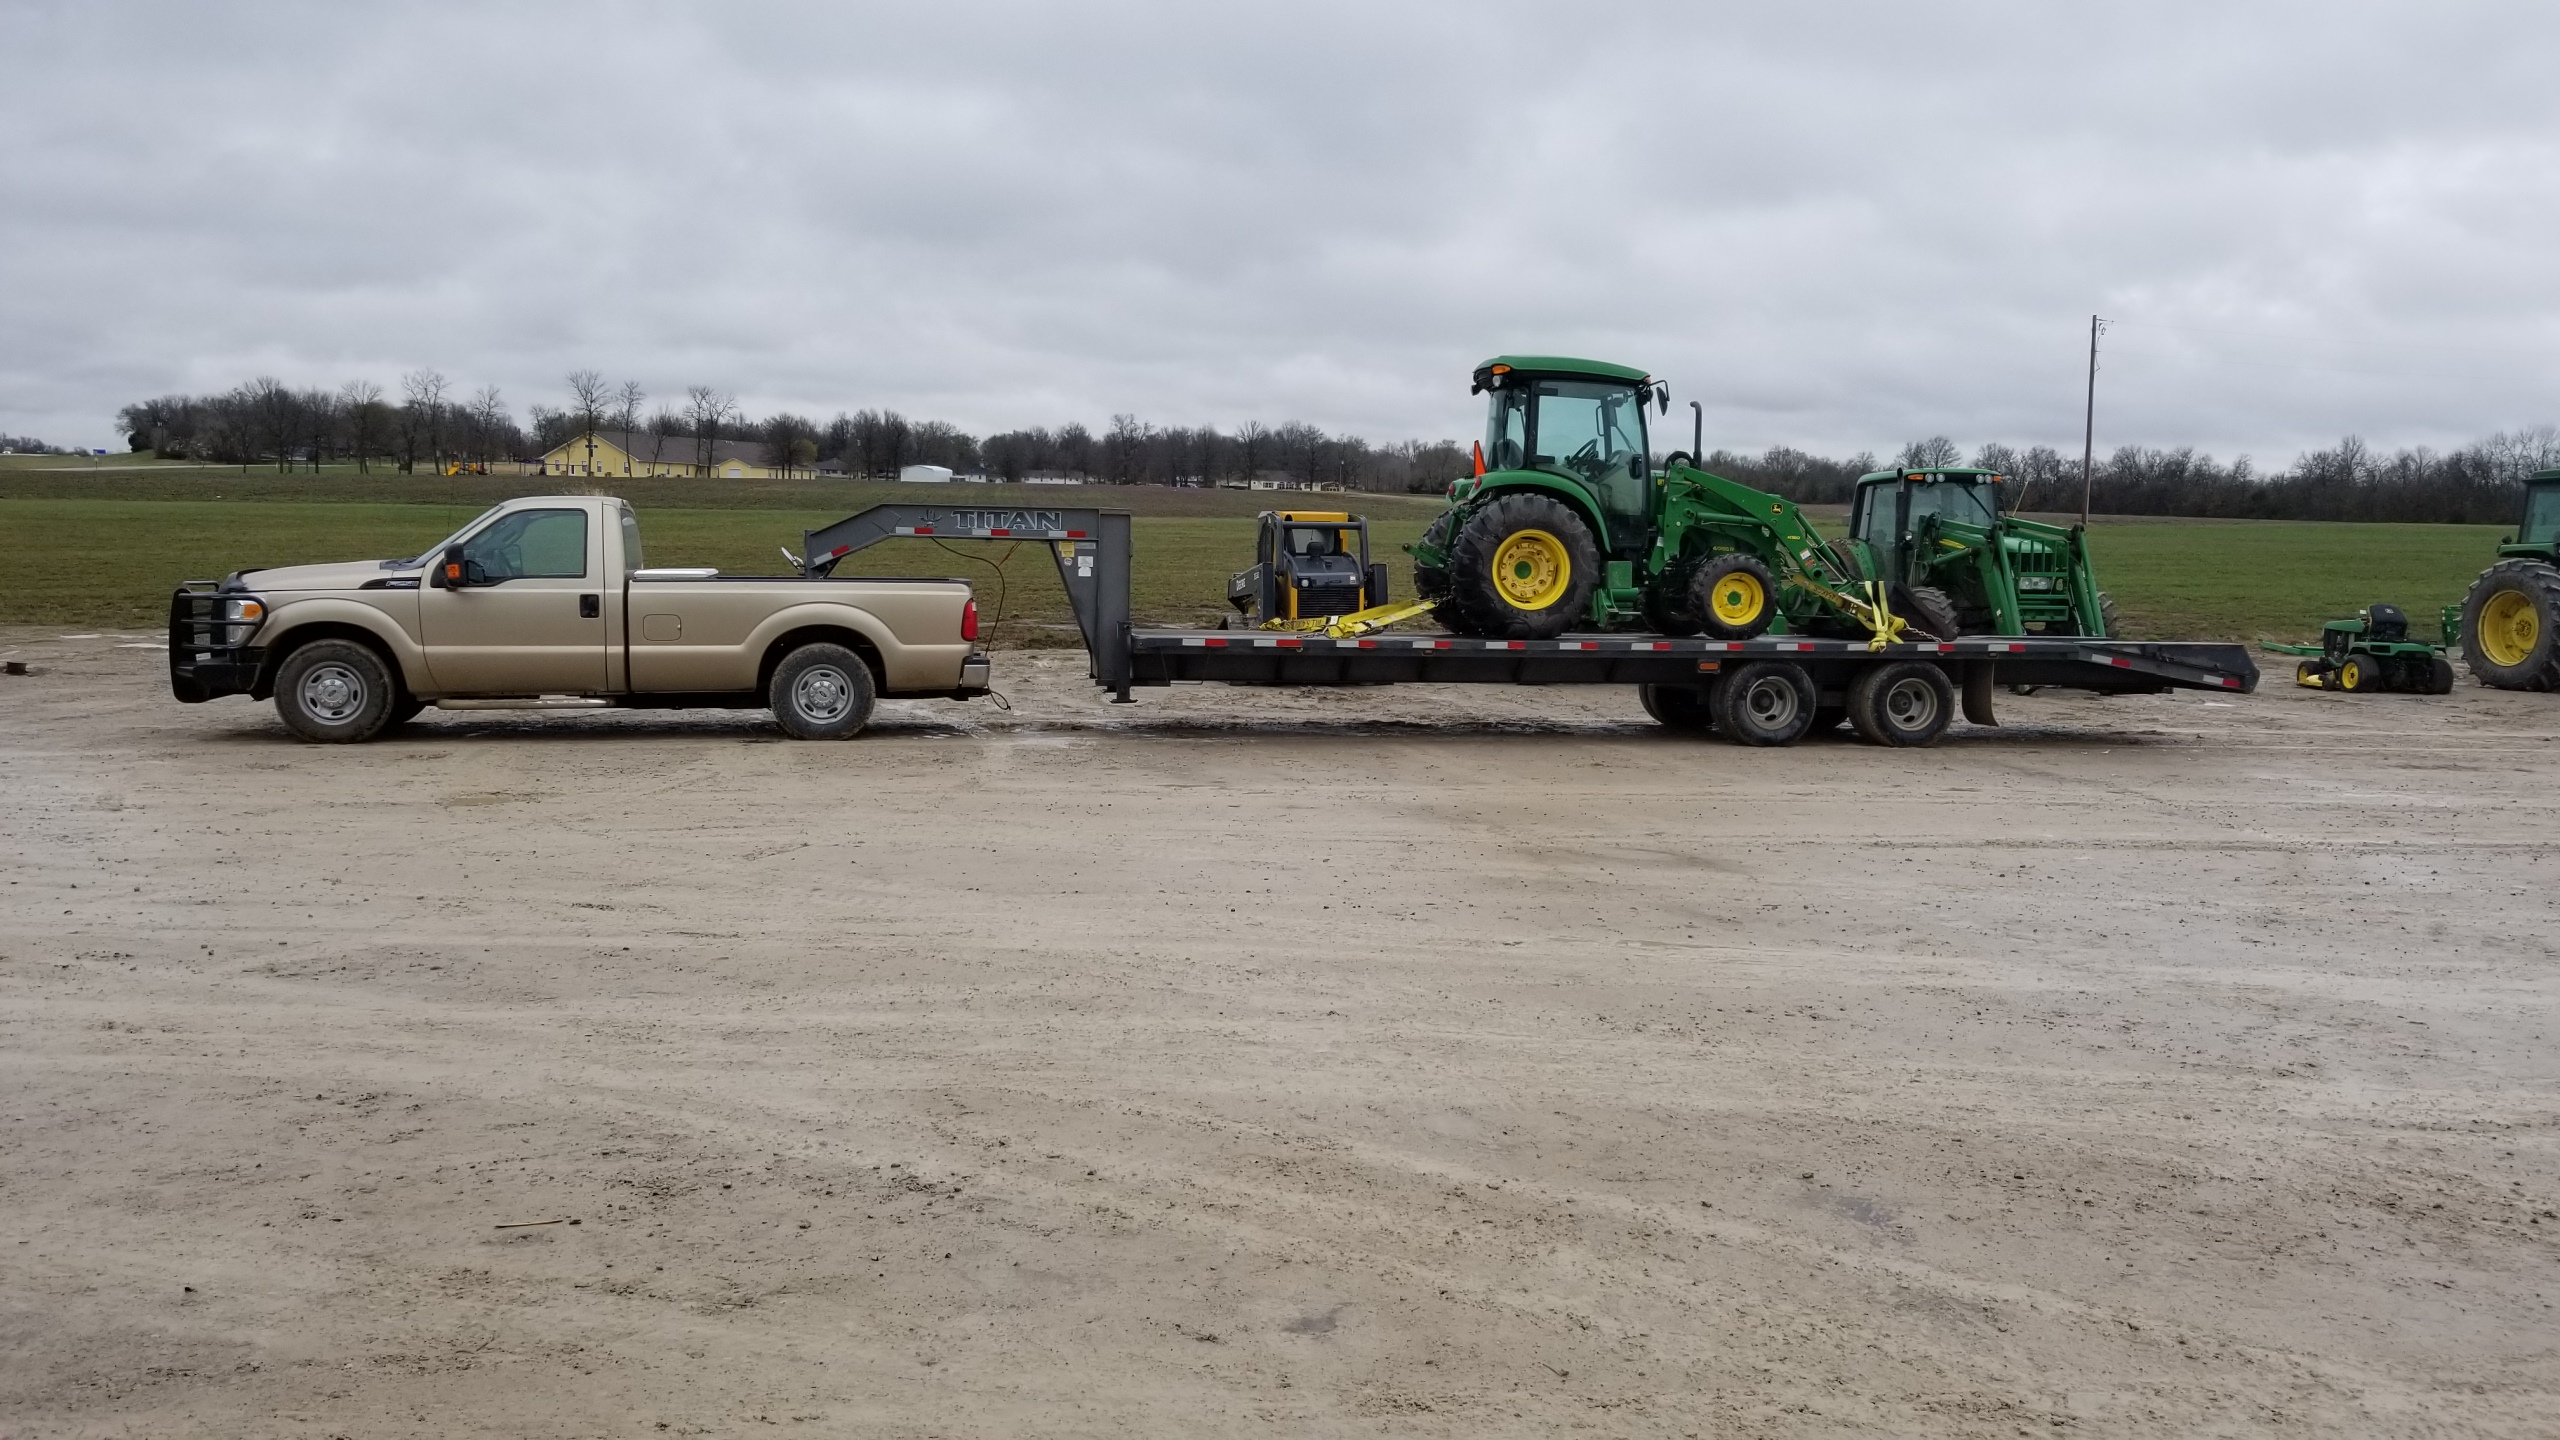 Click image for larger version.  Name:Tractor at dealer.jpg Views:20 Size:1.23 MB ID:666302